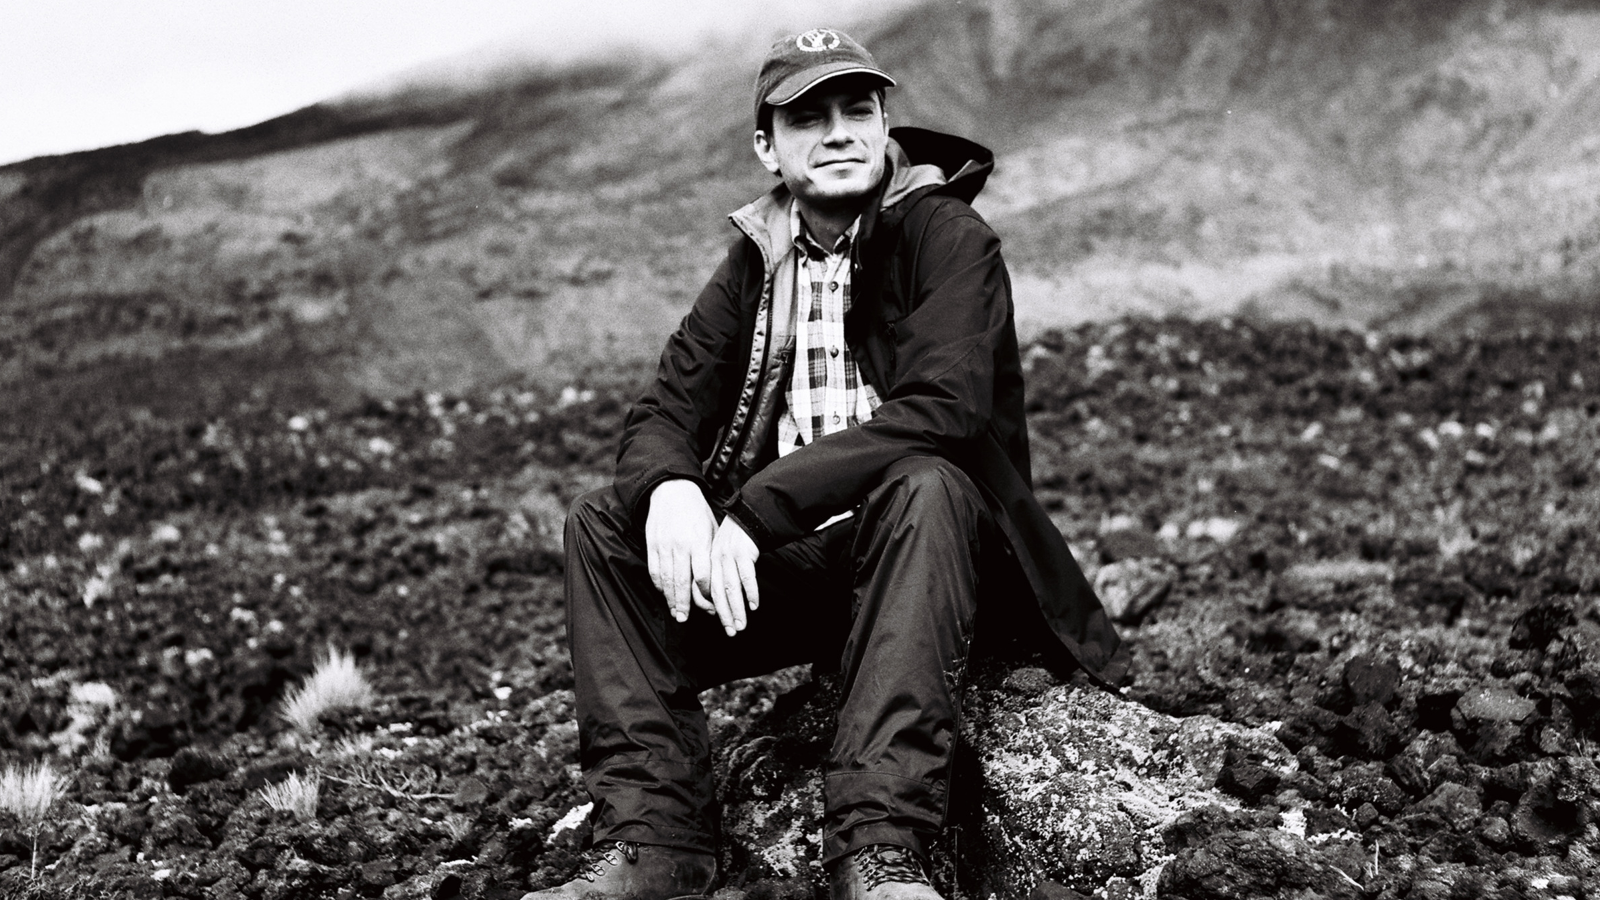 A black and white image of Finnigan sitting on a hill wearing outdoor weather gear.